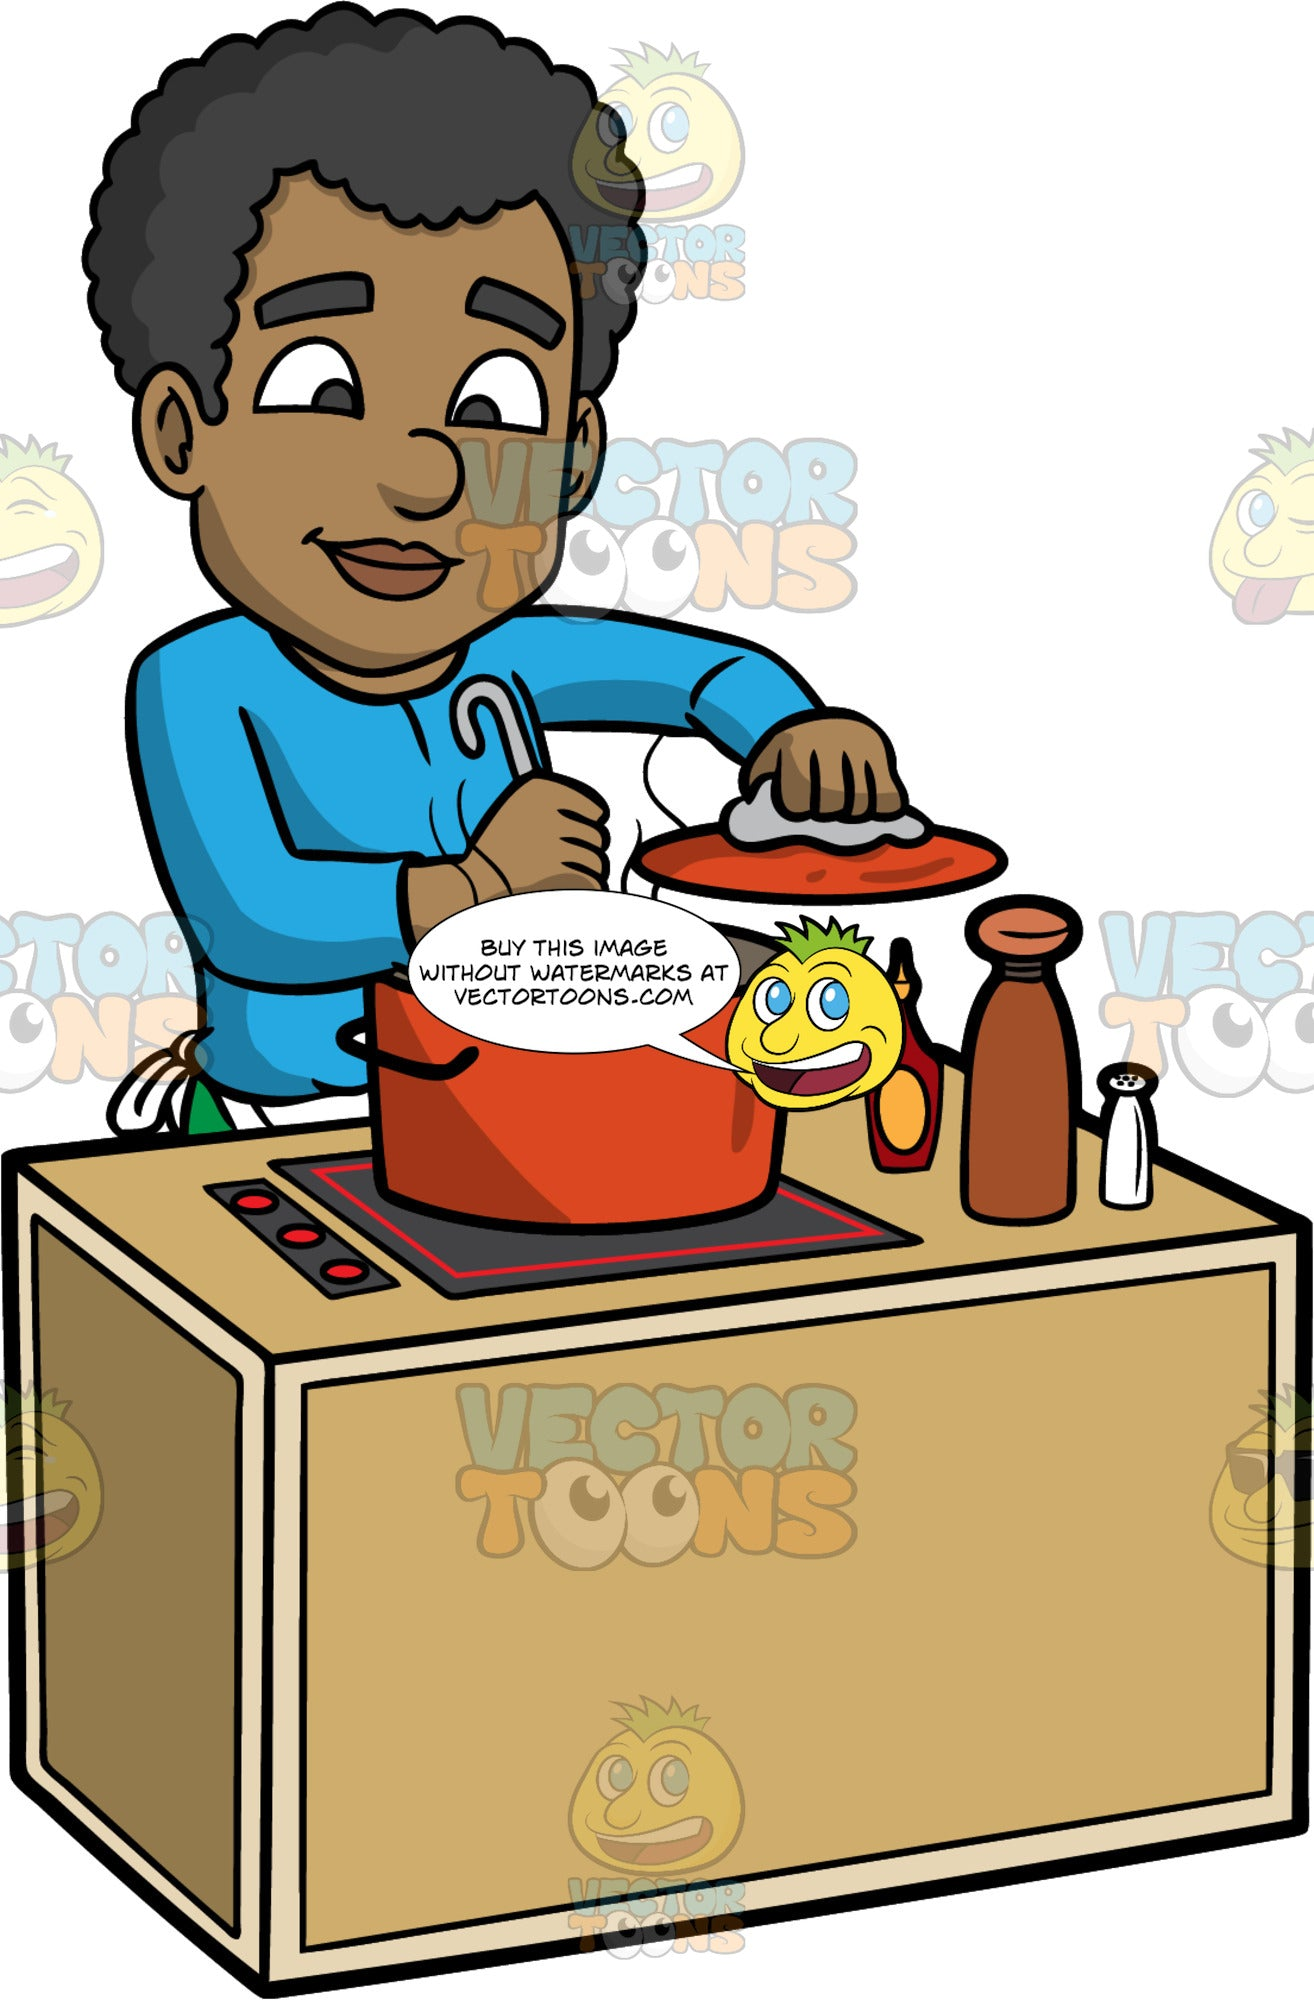 Jimmy Stirring Soup Cooking On The Stove. A black man wearing a blue shirt, and a white apron tied around his waist, standing behind a stove and stirring the soup he is cooking in a large red pot